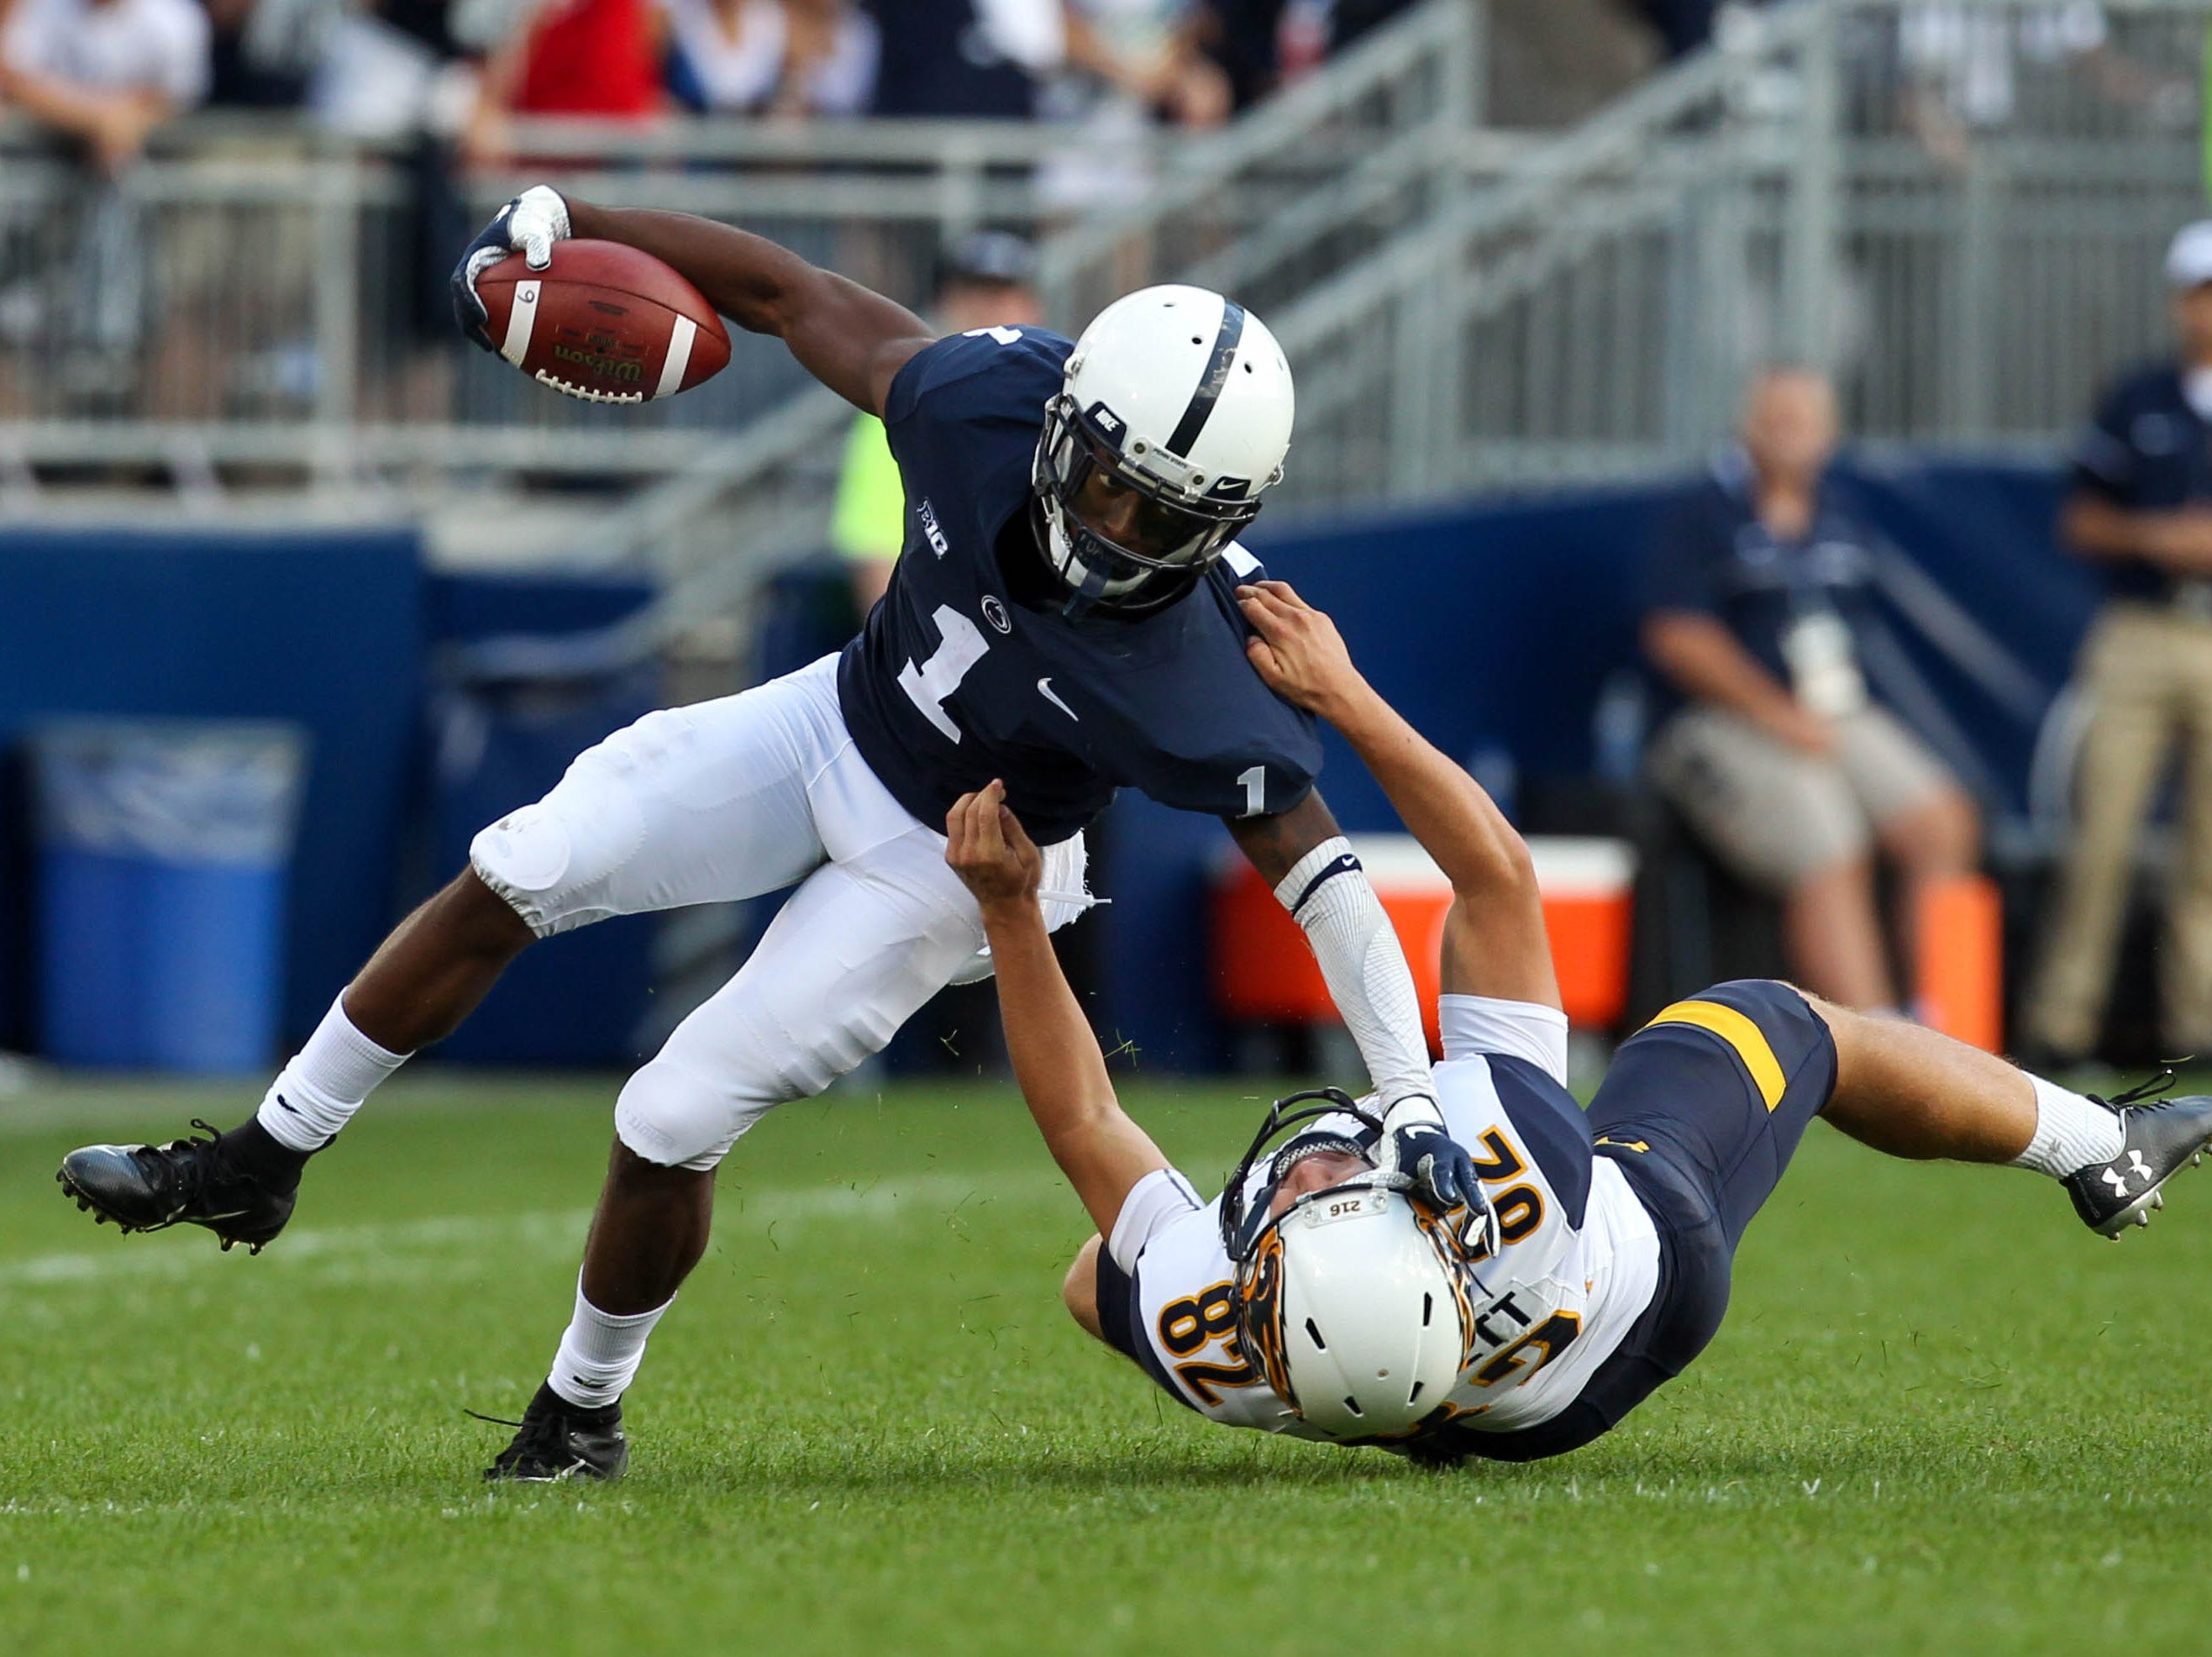 Penn State Nittany Lions wide receiver KJ Hamler (1) runs with the ball as Kent State Golden Flashes kicker Matthew Trickett (82) attempts a tackle during the third quarter at Beaver Stadium.